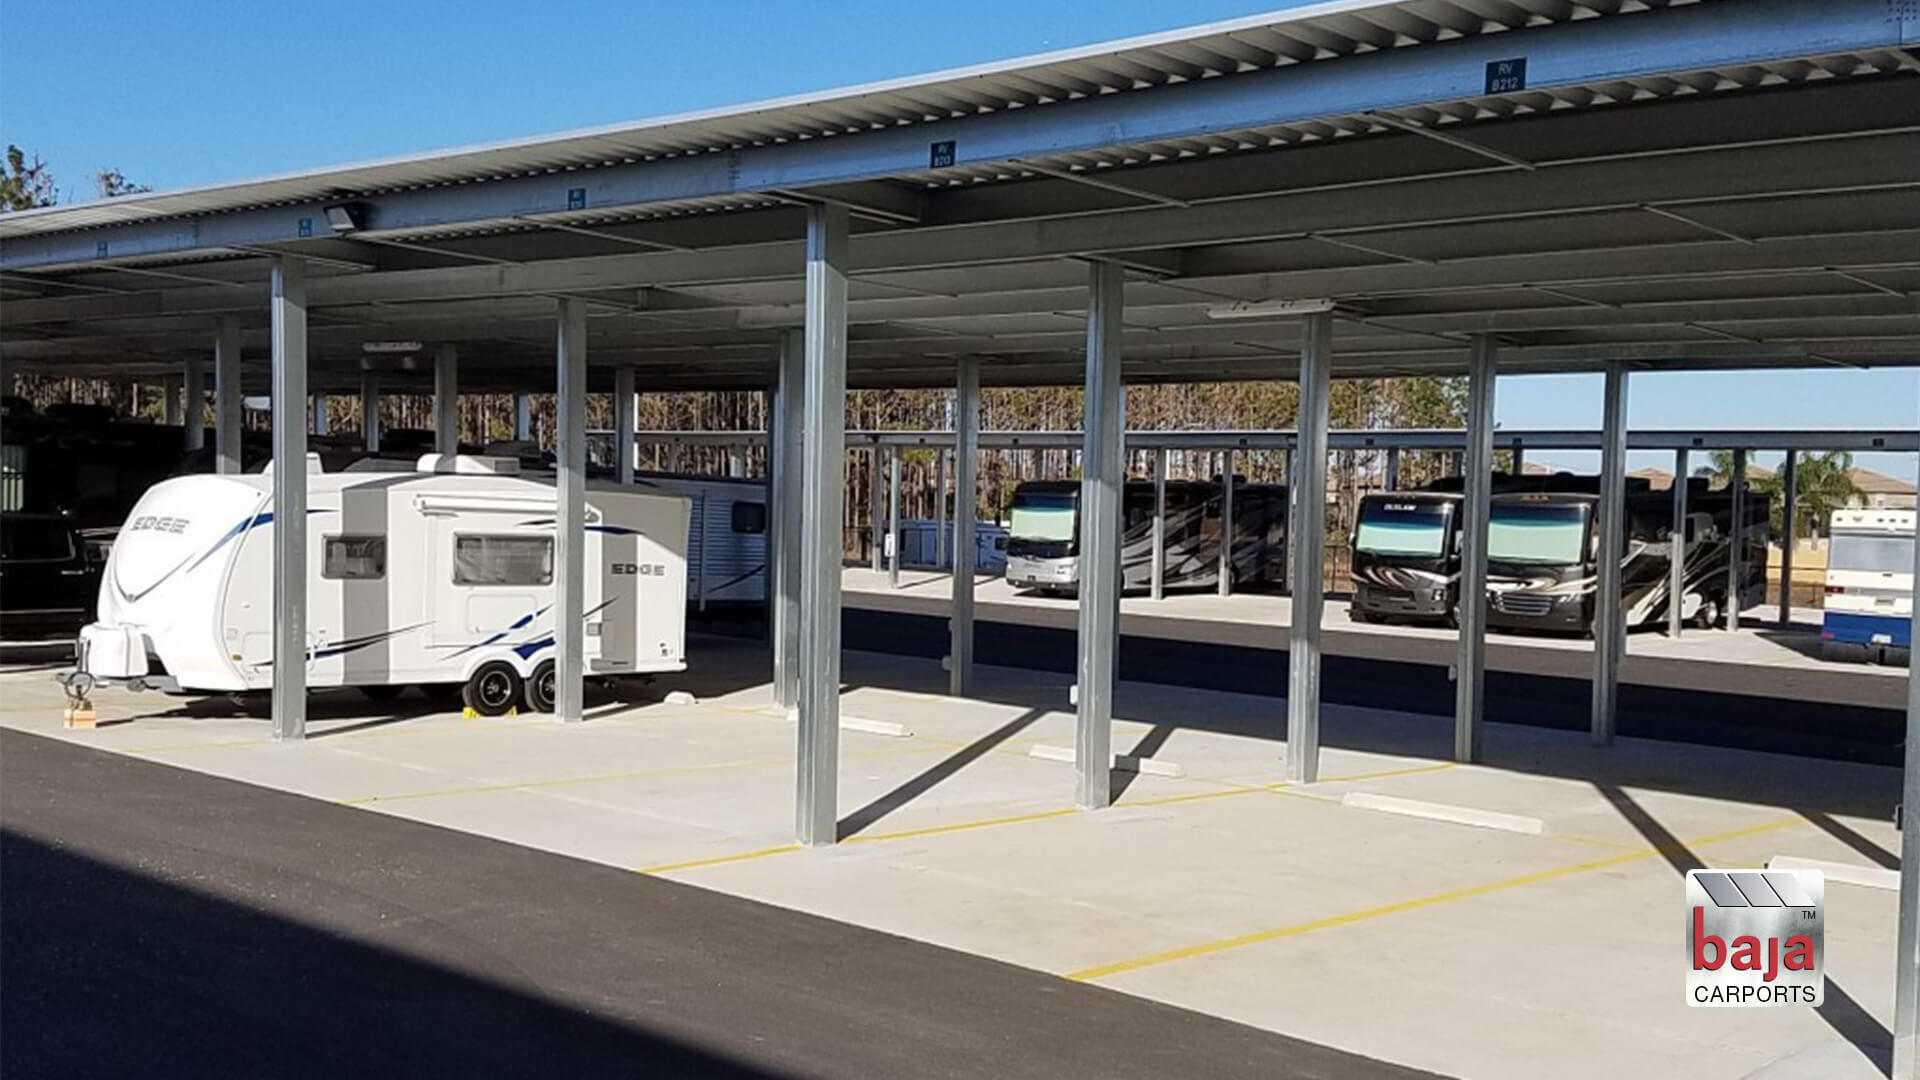 century storage in ridgeview plaza in davenport fl had baja construction install shade canopies